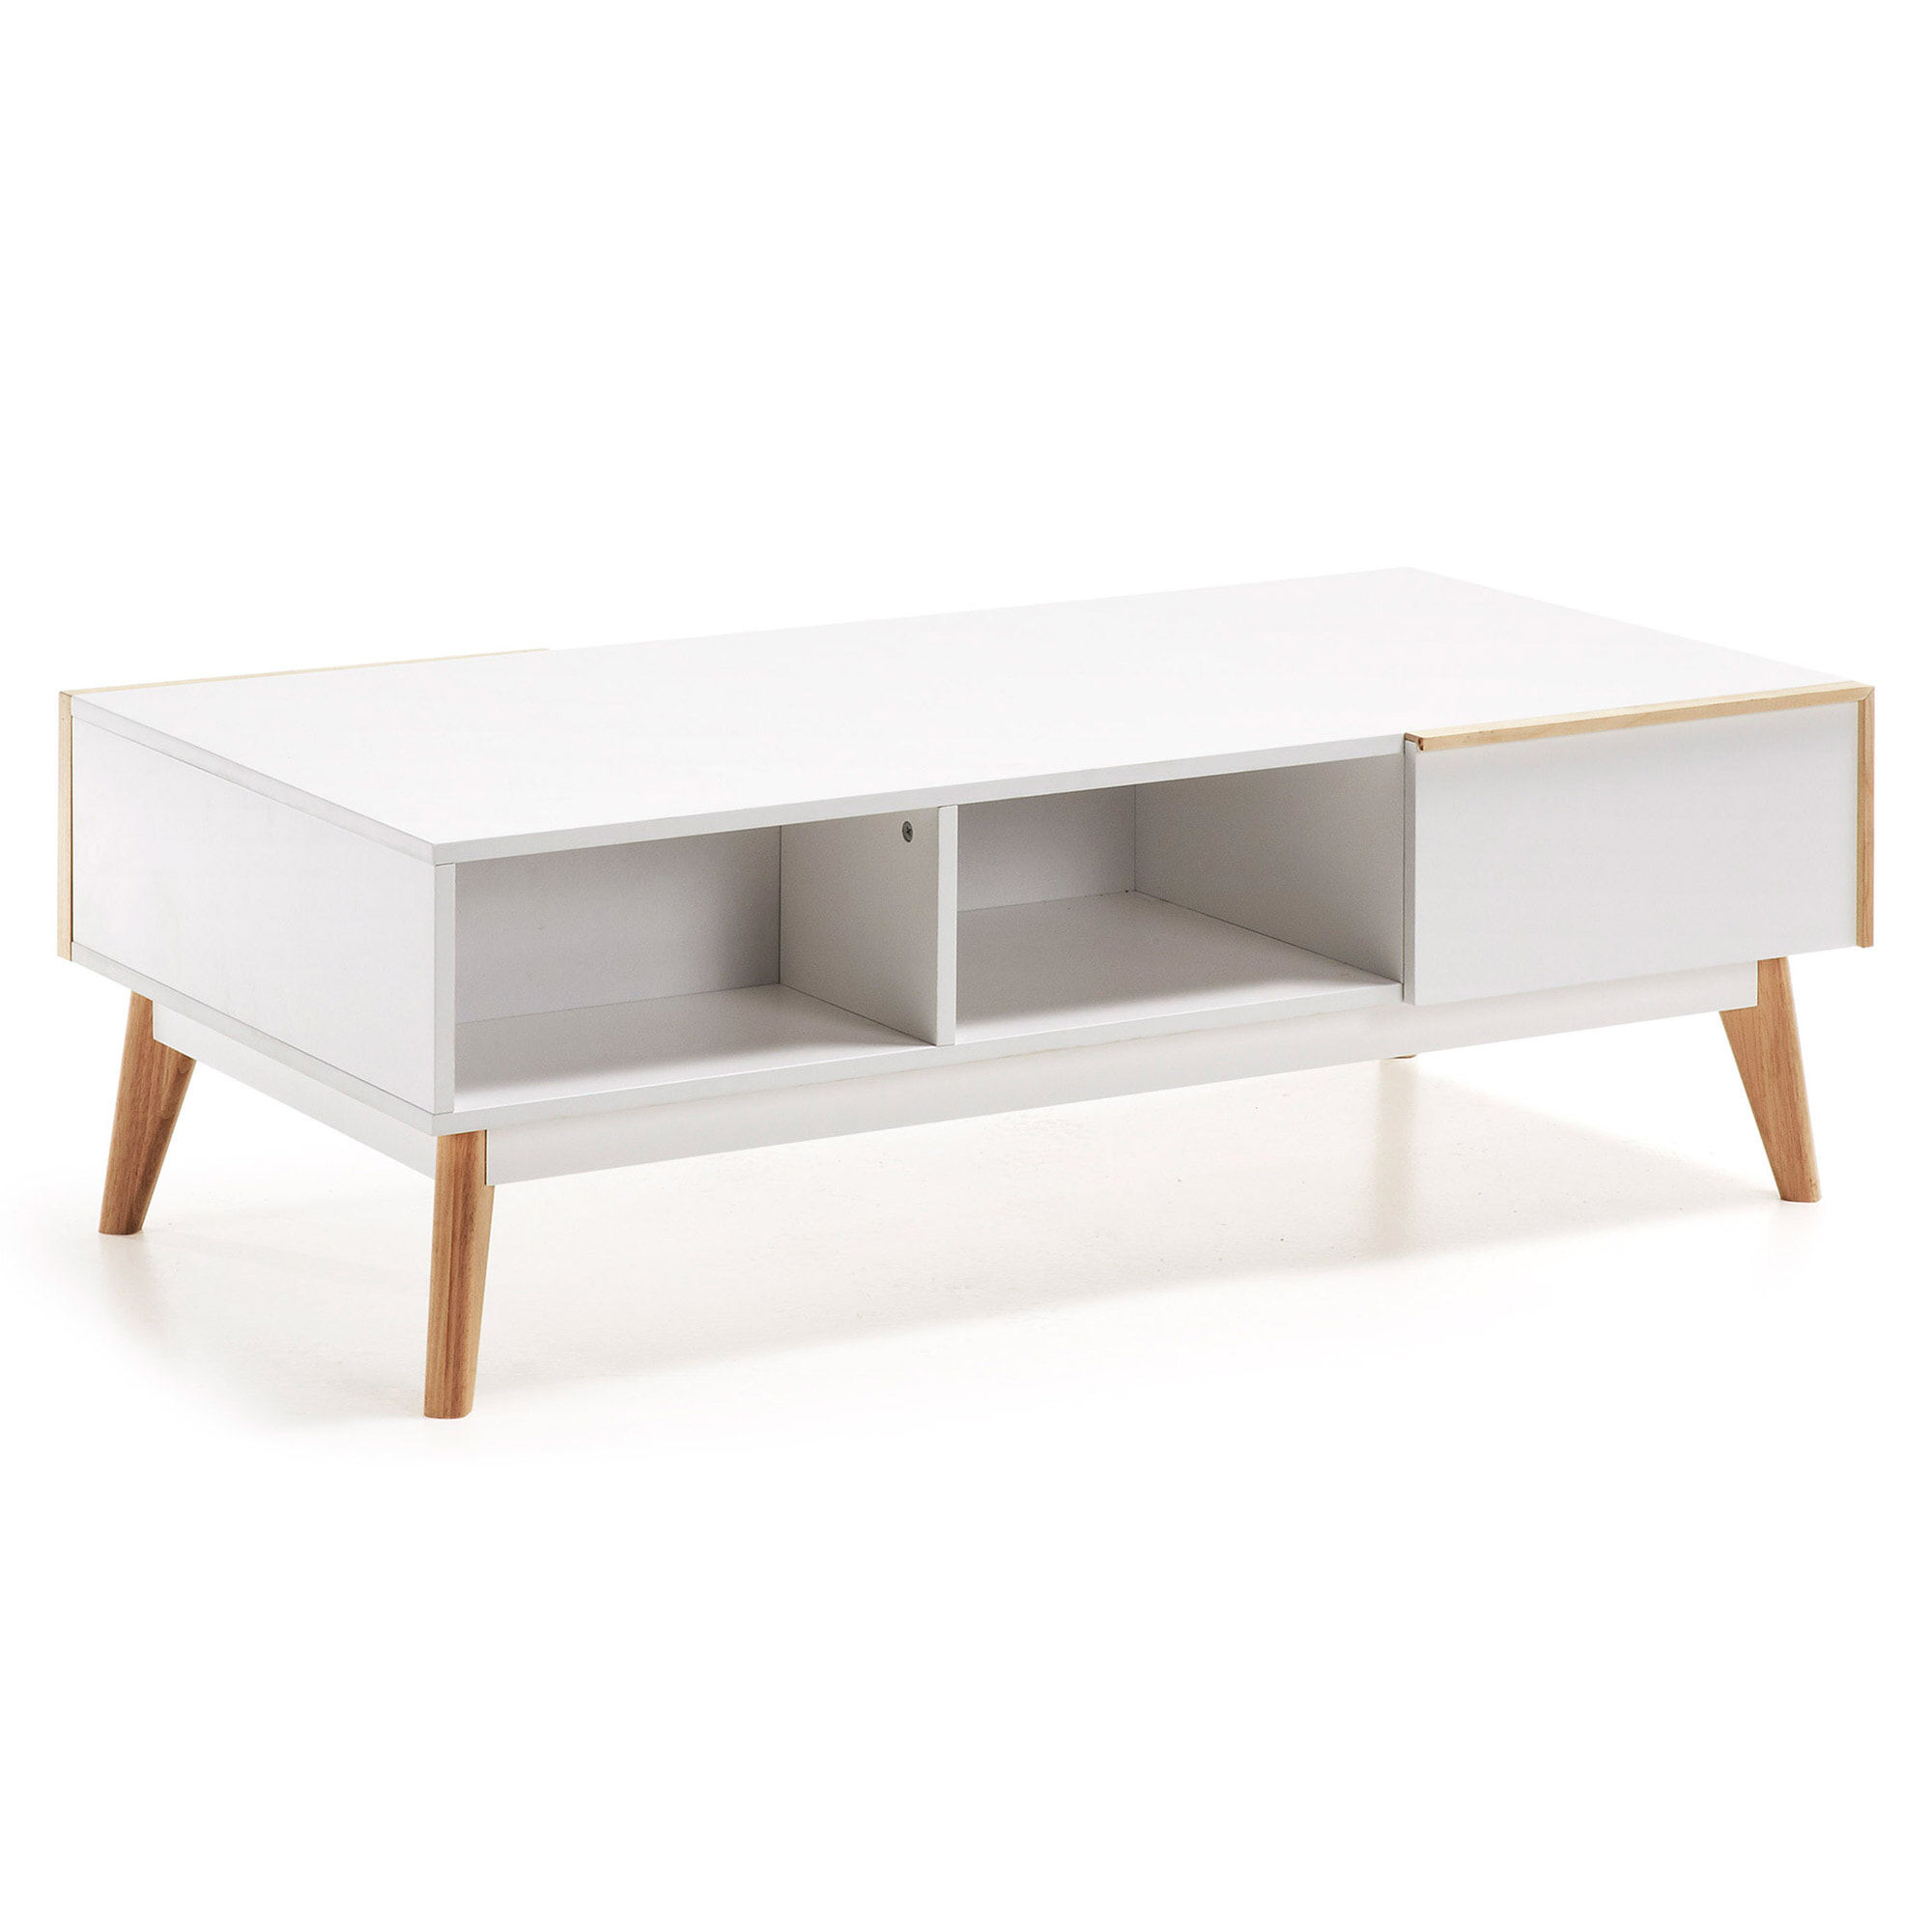 Kave Home Salontafel 'Melan', met 2 laden